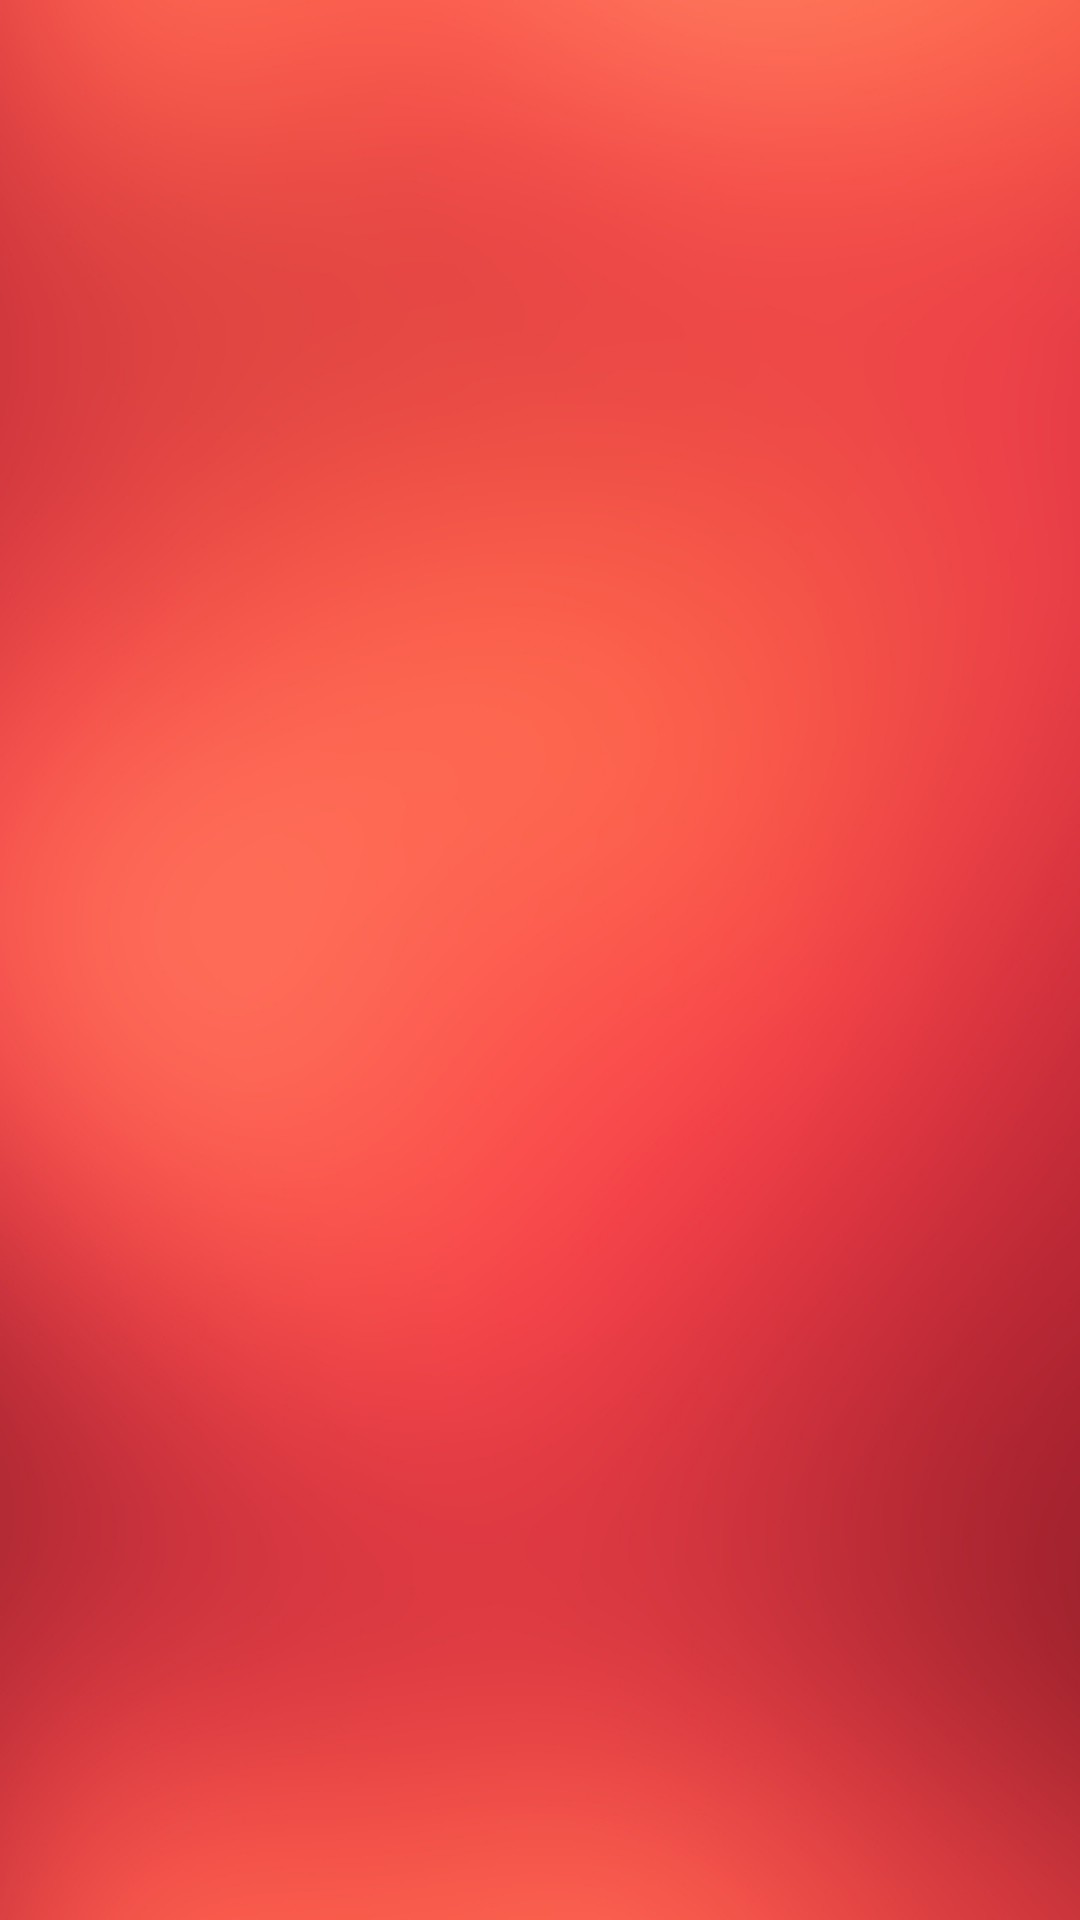 1080x1920  Wallpaper solid, red, bright, shiny